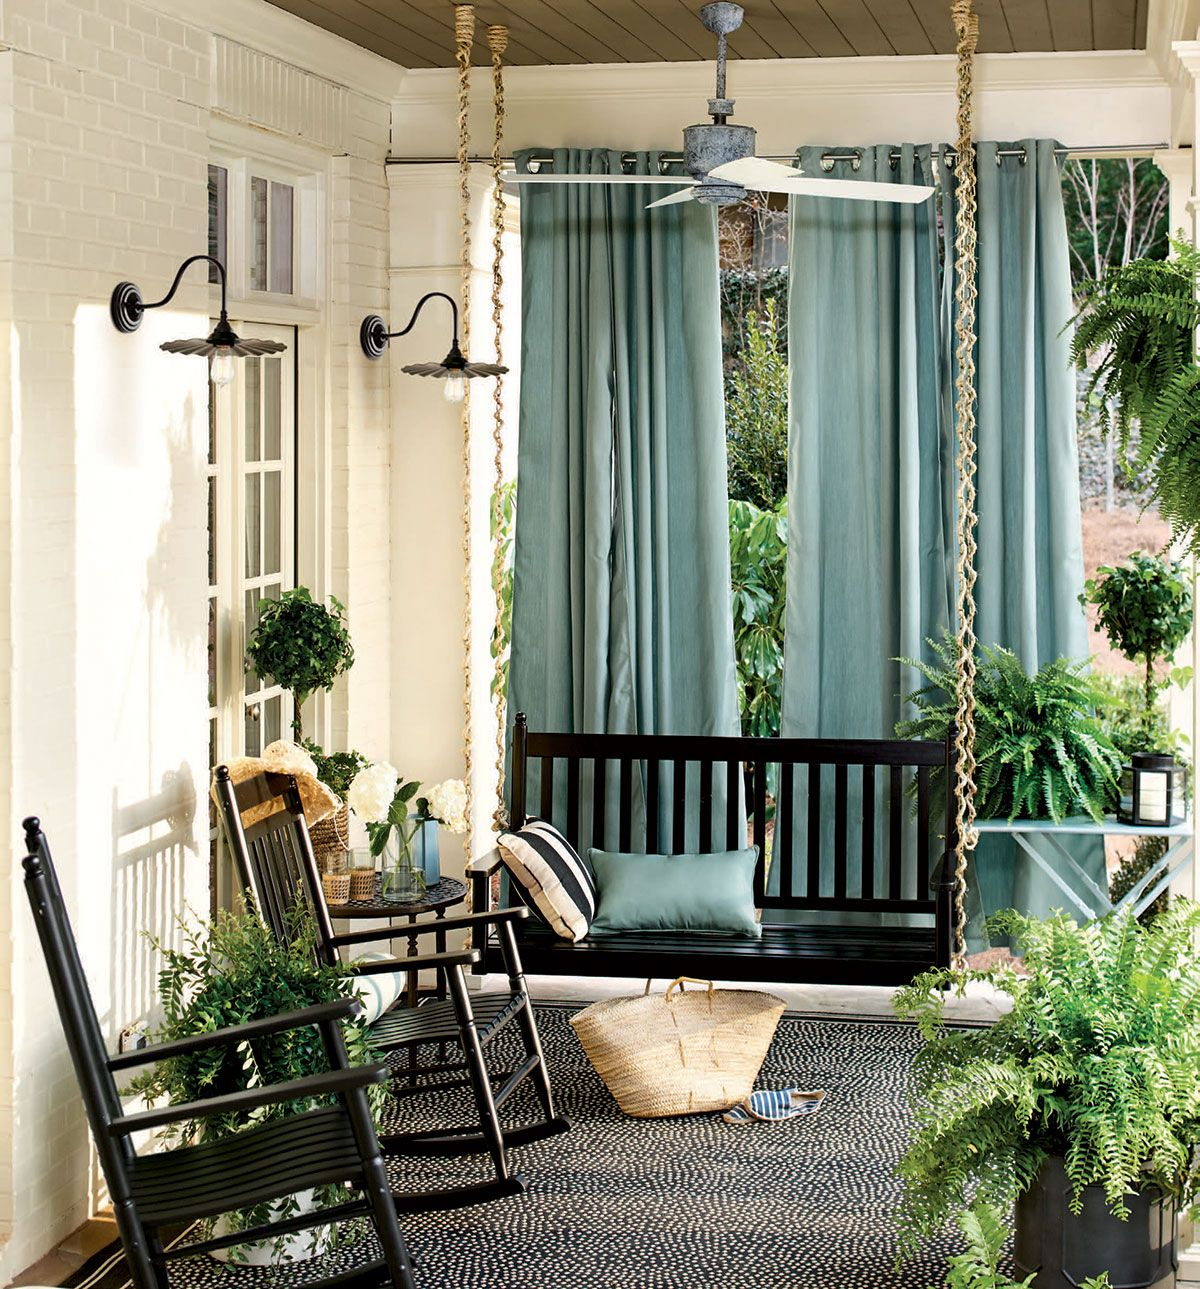 Porch curtains ideas - Outdoor Spaces Front Porch Curtainsporch